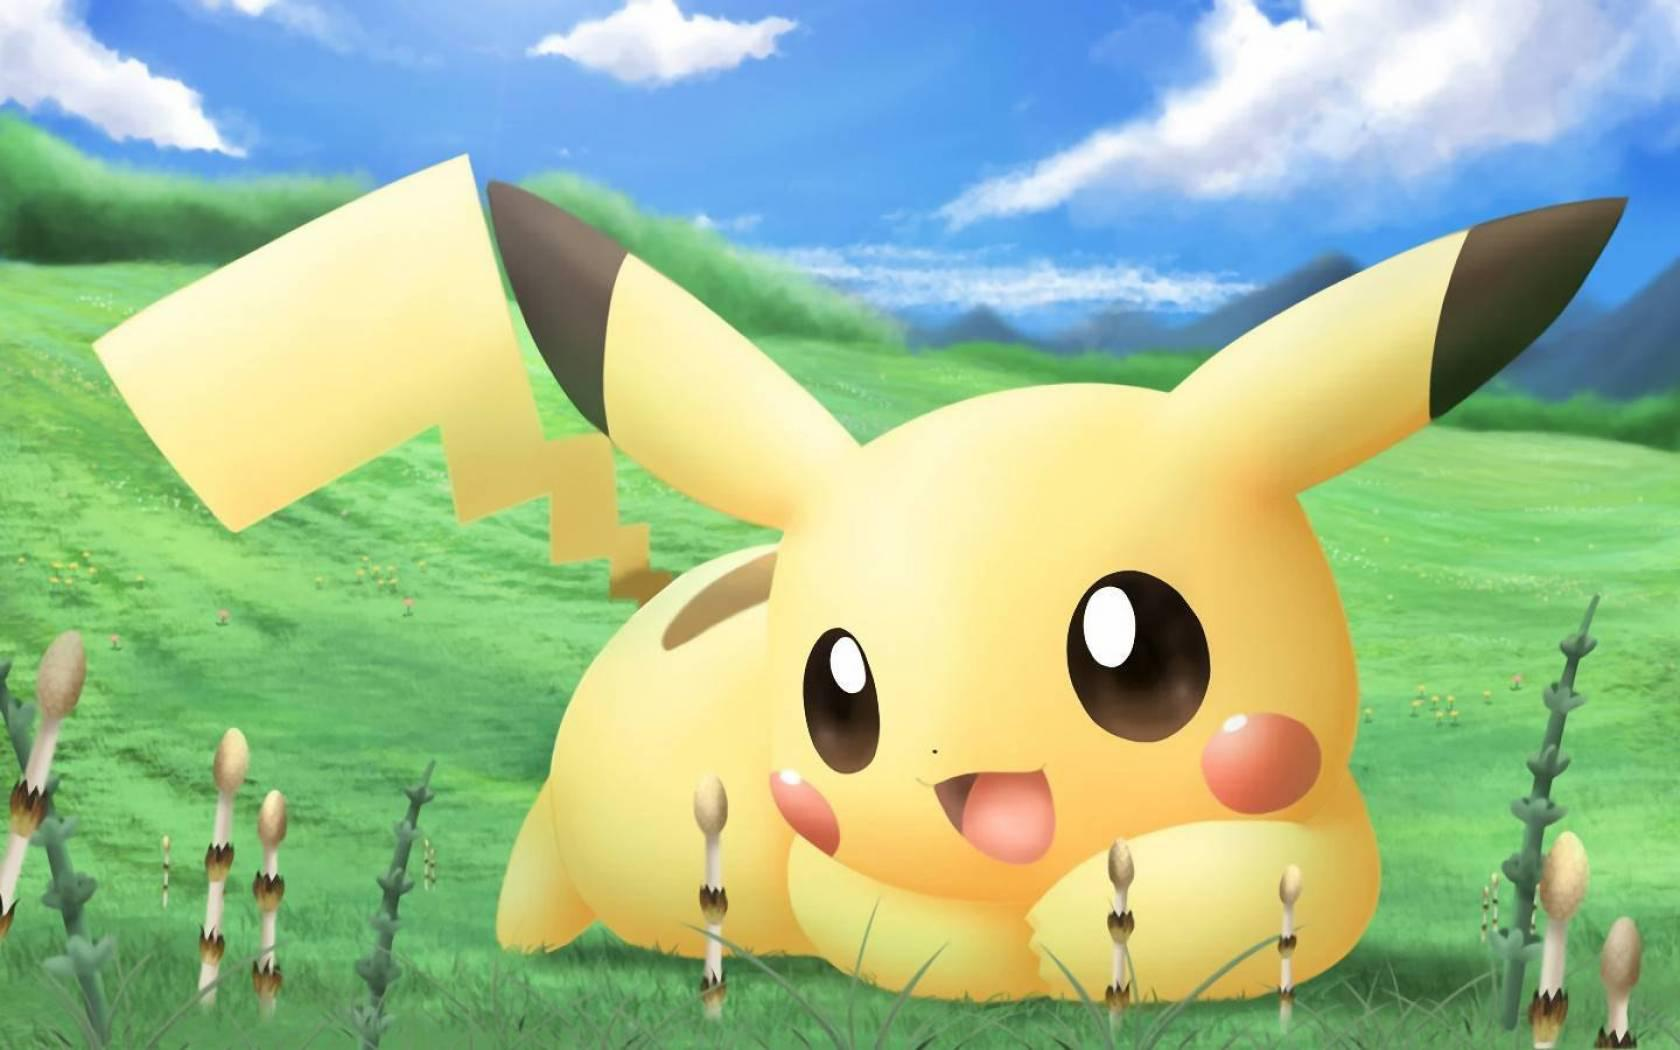 download Pikachu backgrounds 1680x1050